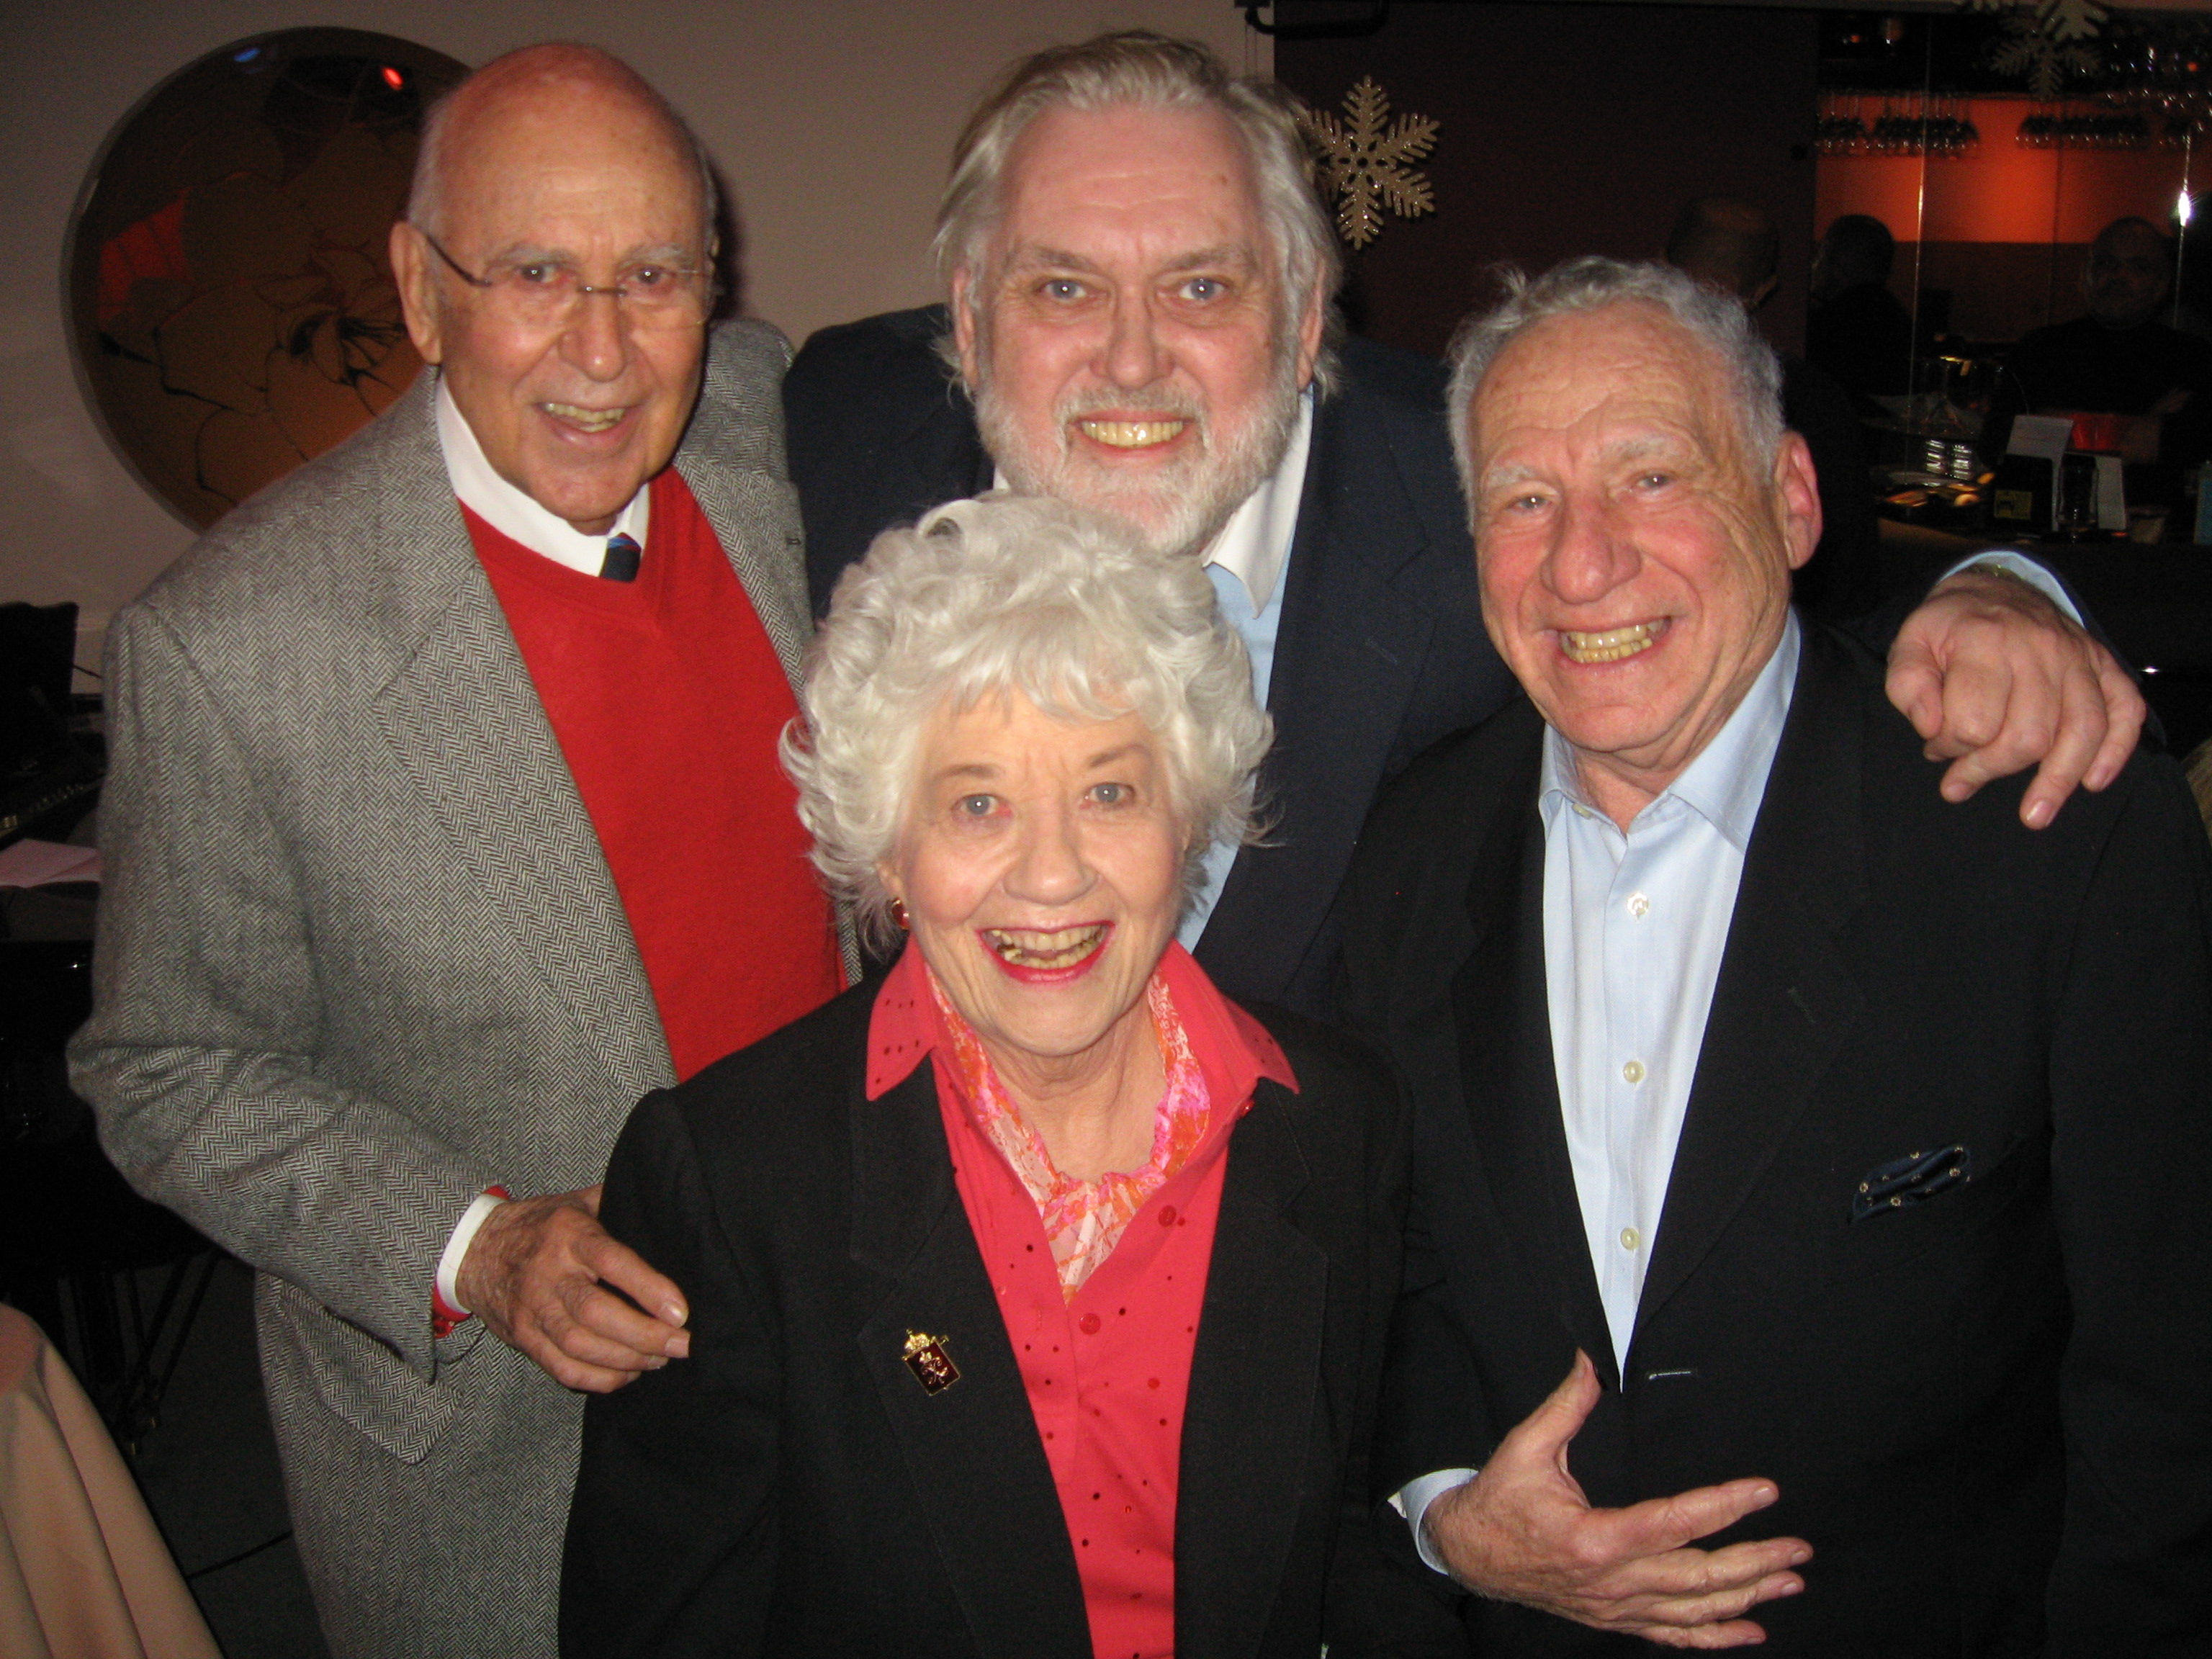 Jim Brochu, Carl Reiner, Mel Brooks, Charlotte Rae